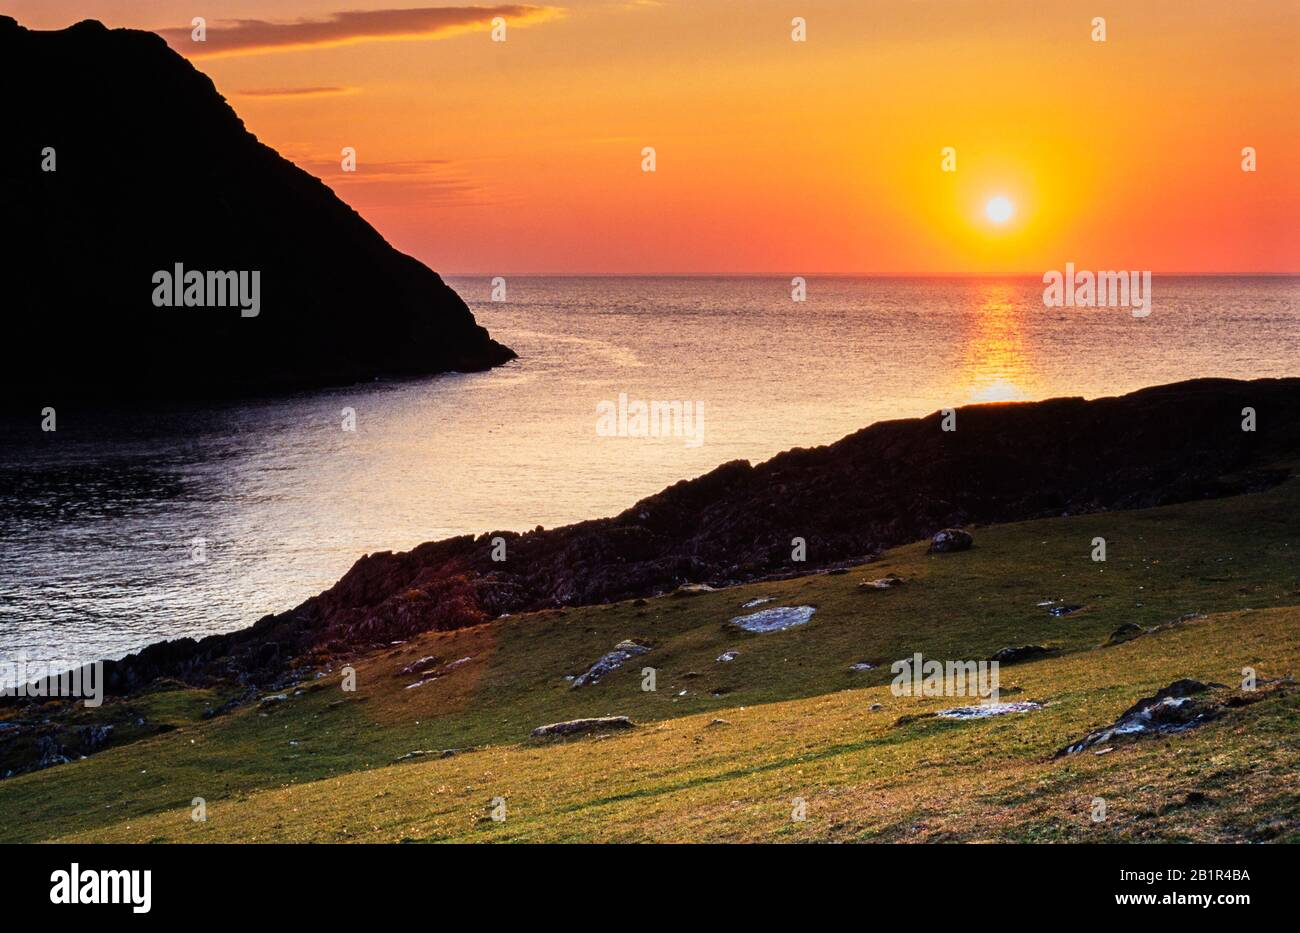 sunset-over-the-open-atlantic-ocean-at-dursey-beara-peninsula-county-cork-ireland-with-dursey-island-on-the-left-of-the-image-2B1R4BA.jpg